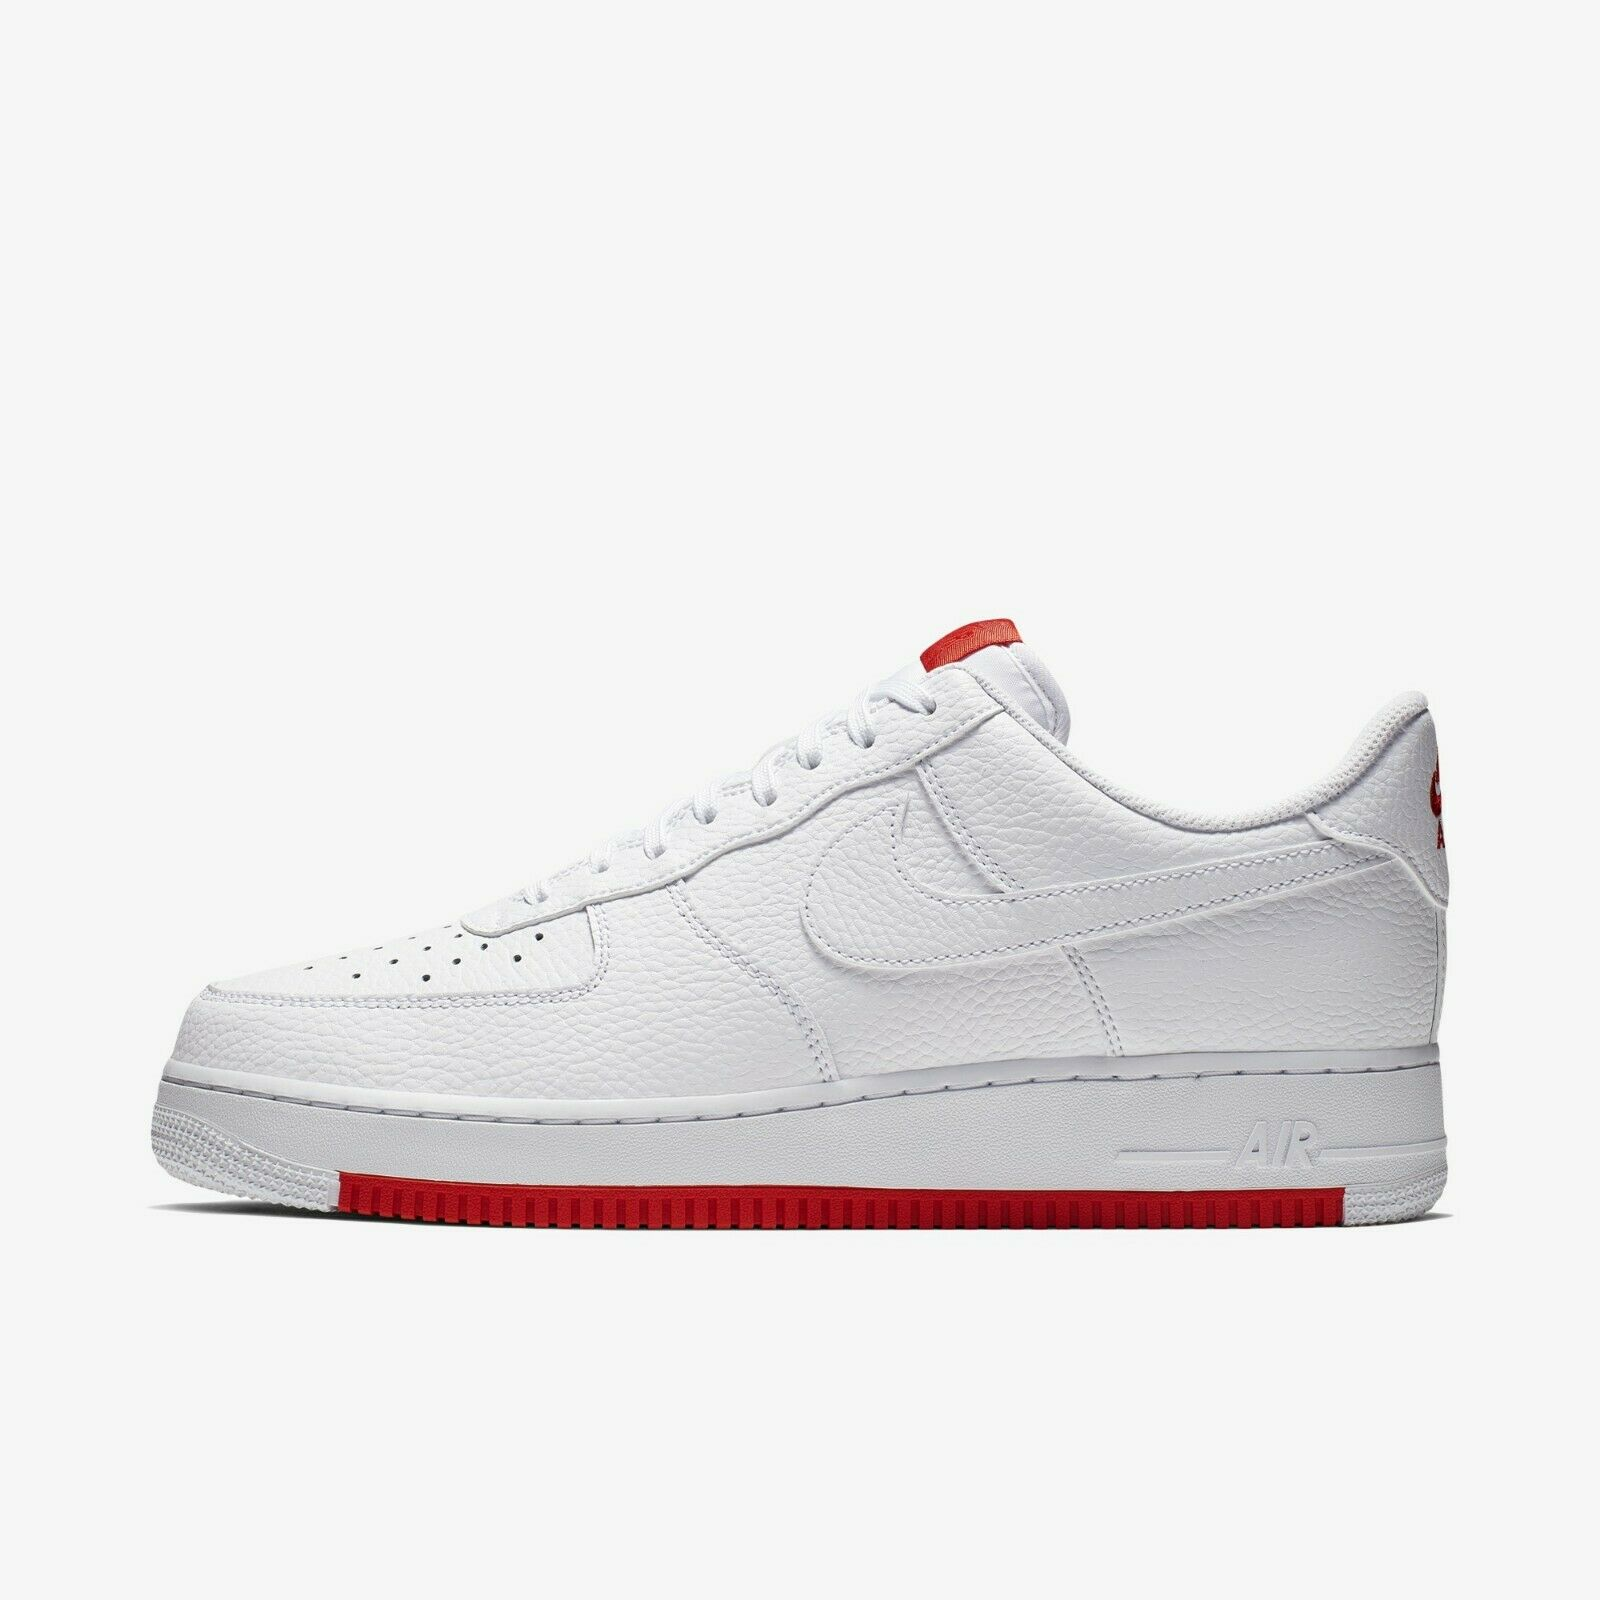 [Nike] AO2409-101 Air Force 1 07 1 Men Running shoes Sneakers White